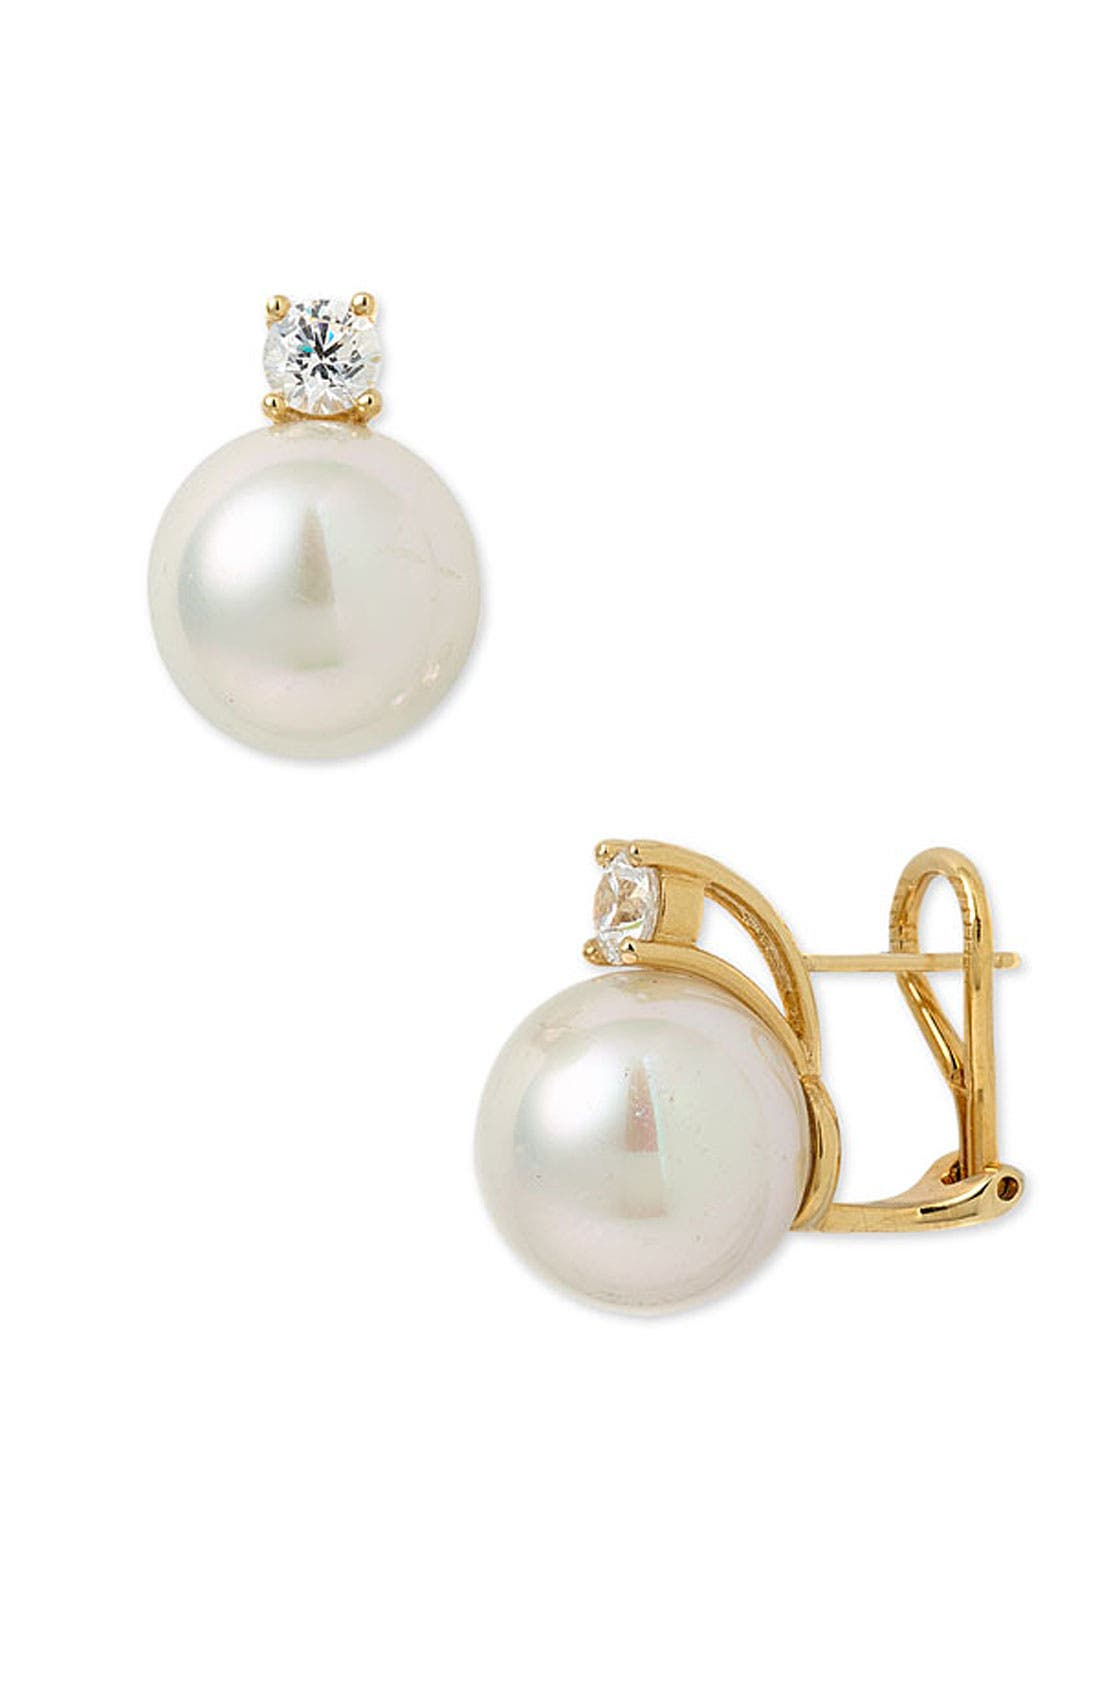 Main Image - Majorica 12mm Round Pearl Stud Earrings with Cubic Zirconia